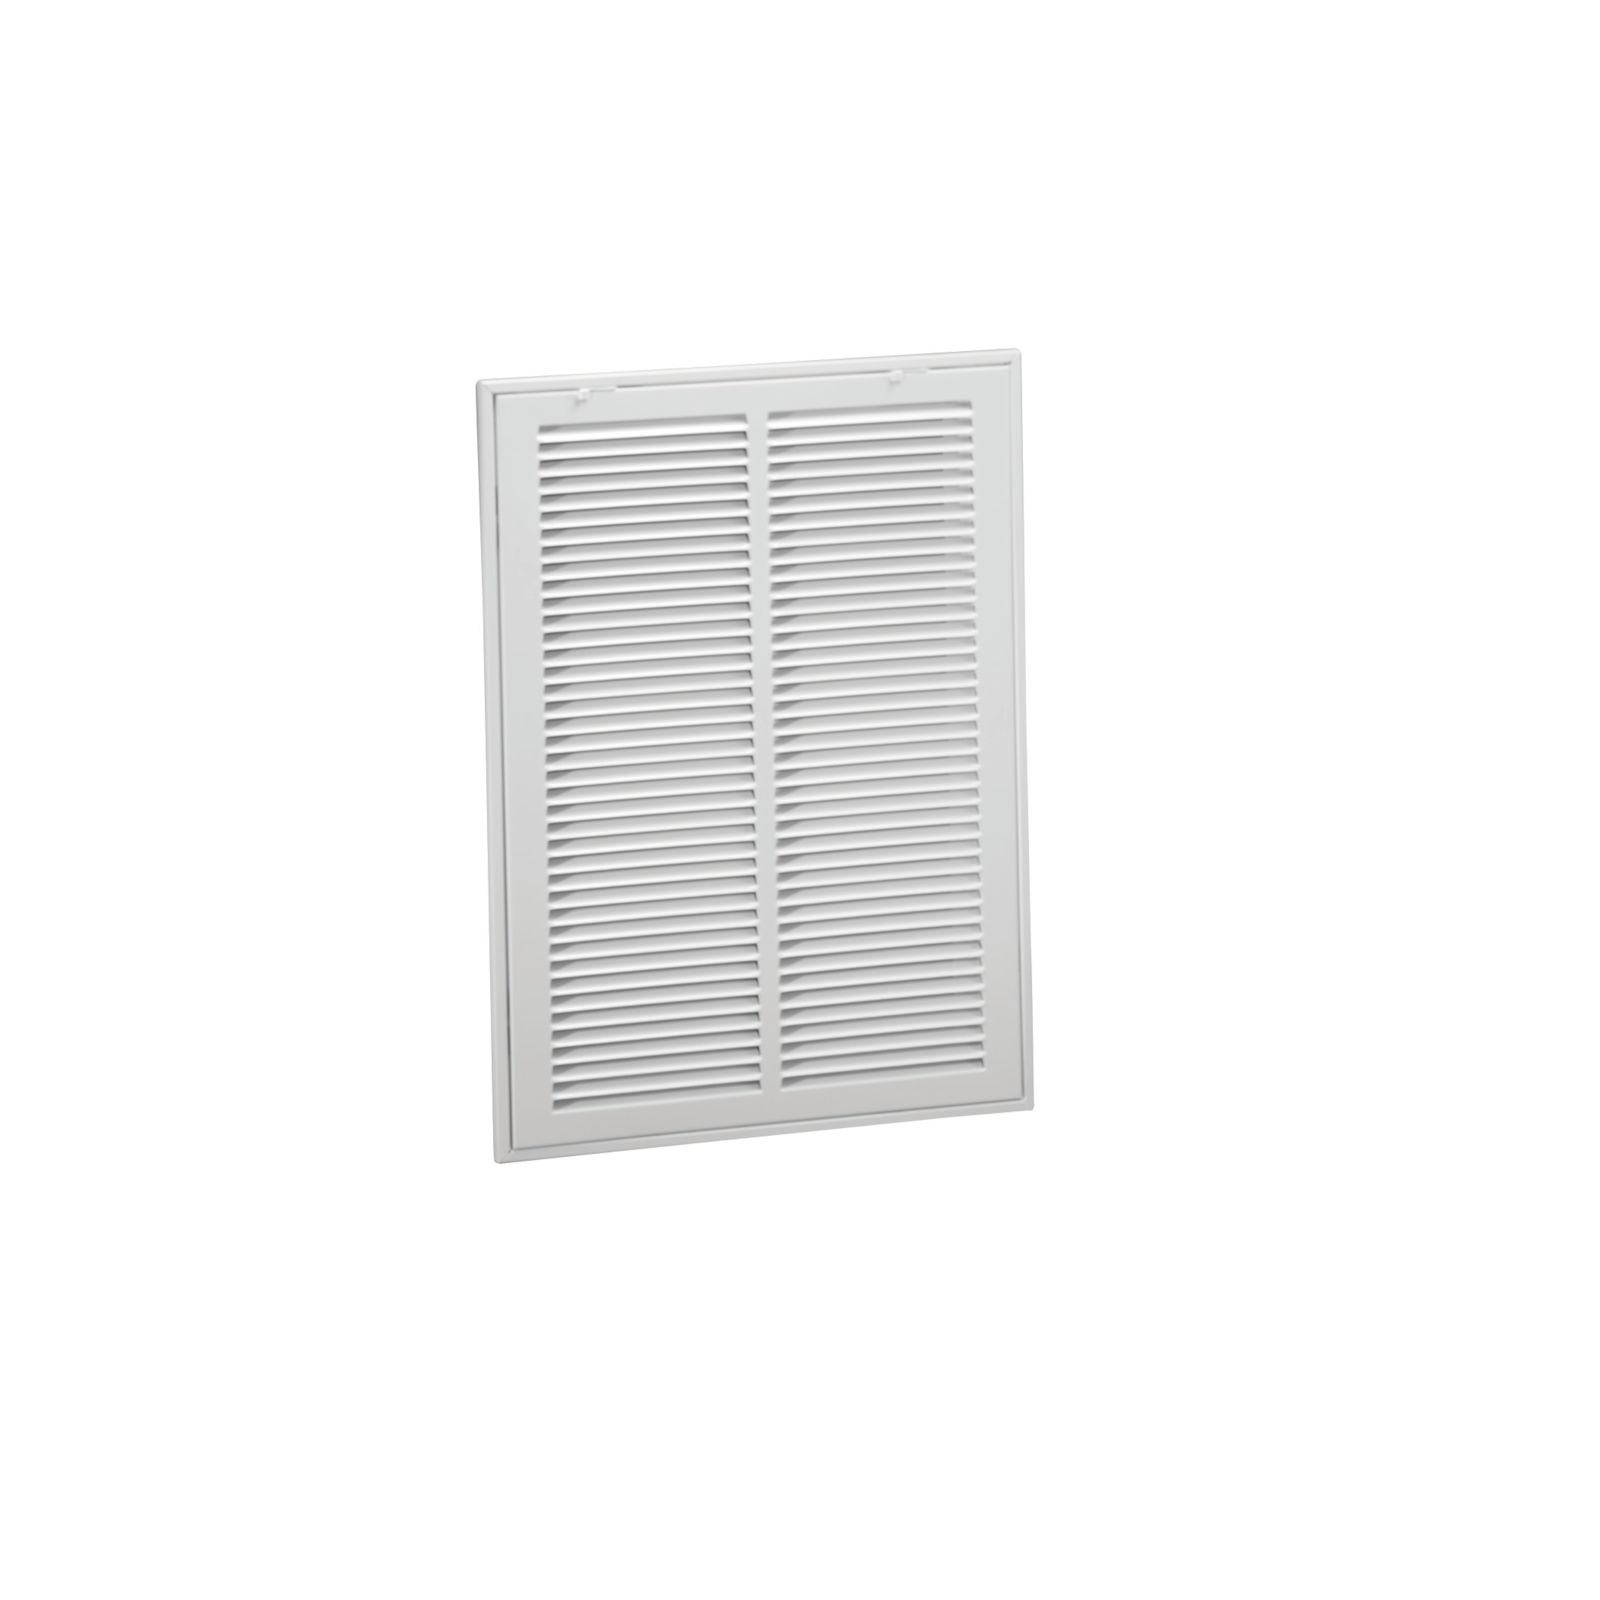 "Hart & Cooley 043516 - #673 Steel Return Air Filter Grille, White Finish, 20"" X 12"""